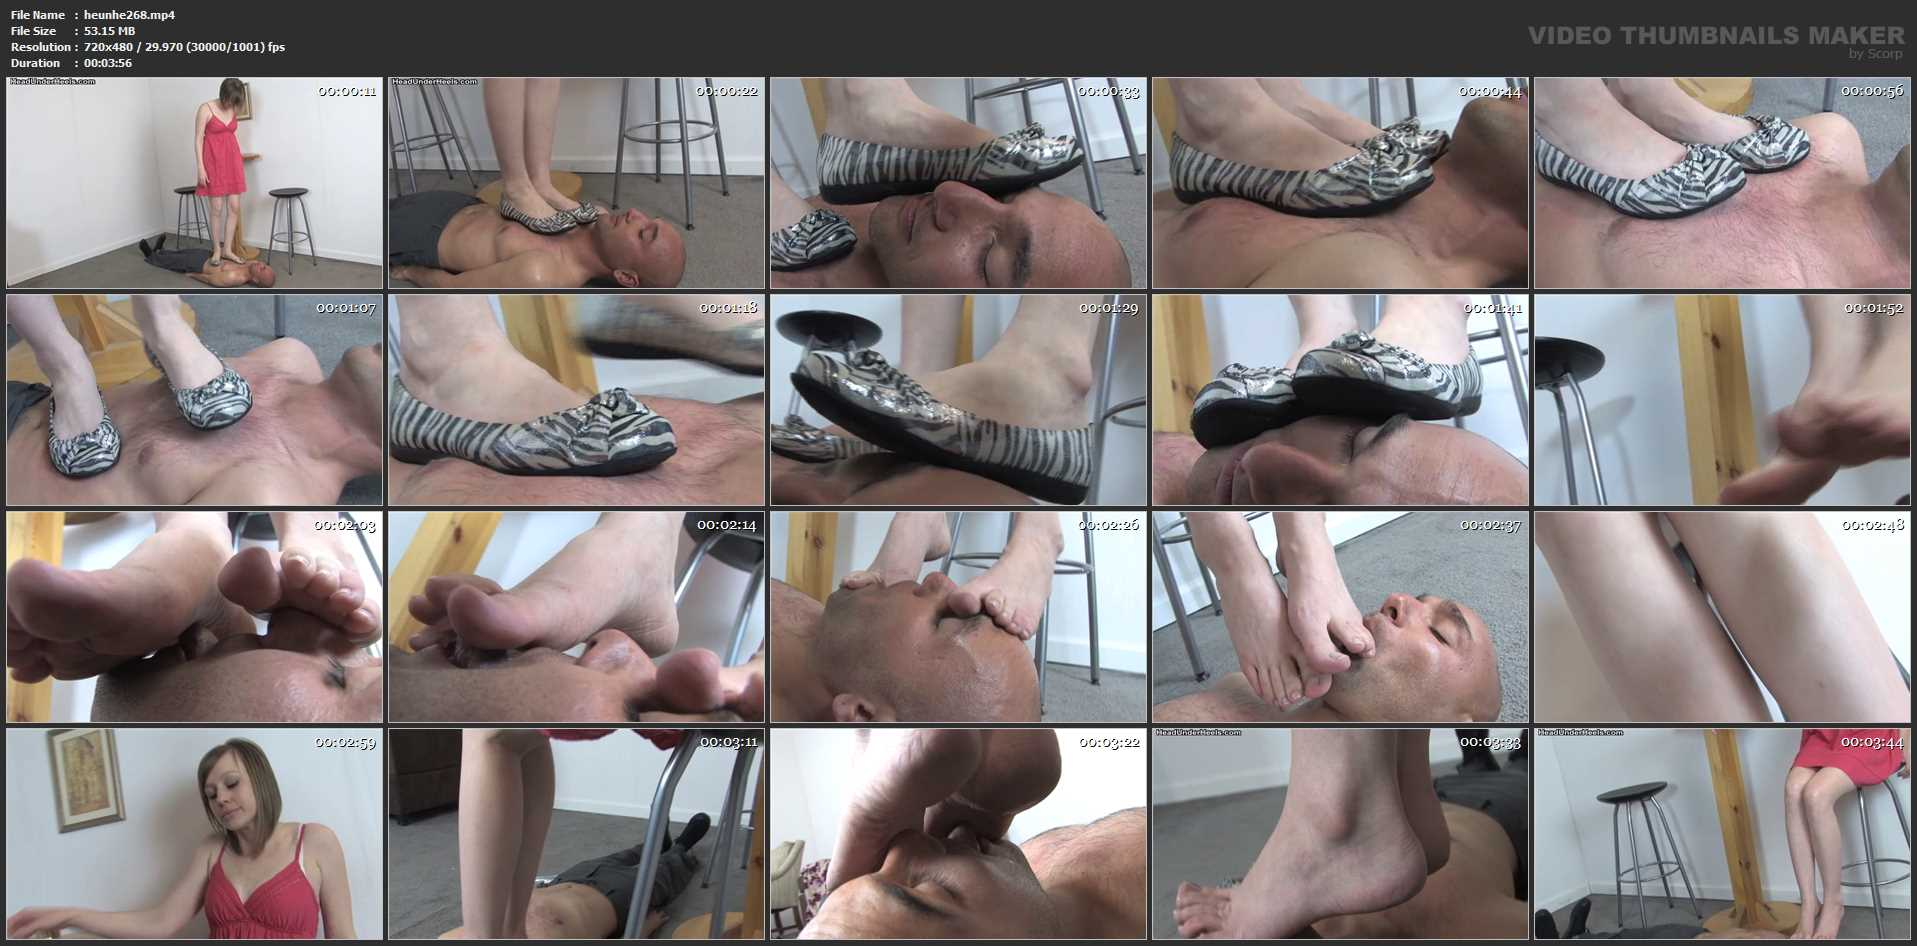 Kylie is trampling all over her shirtless slave in flat shoes - HEADUNDERHEELS - SD/480p/MP4